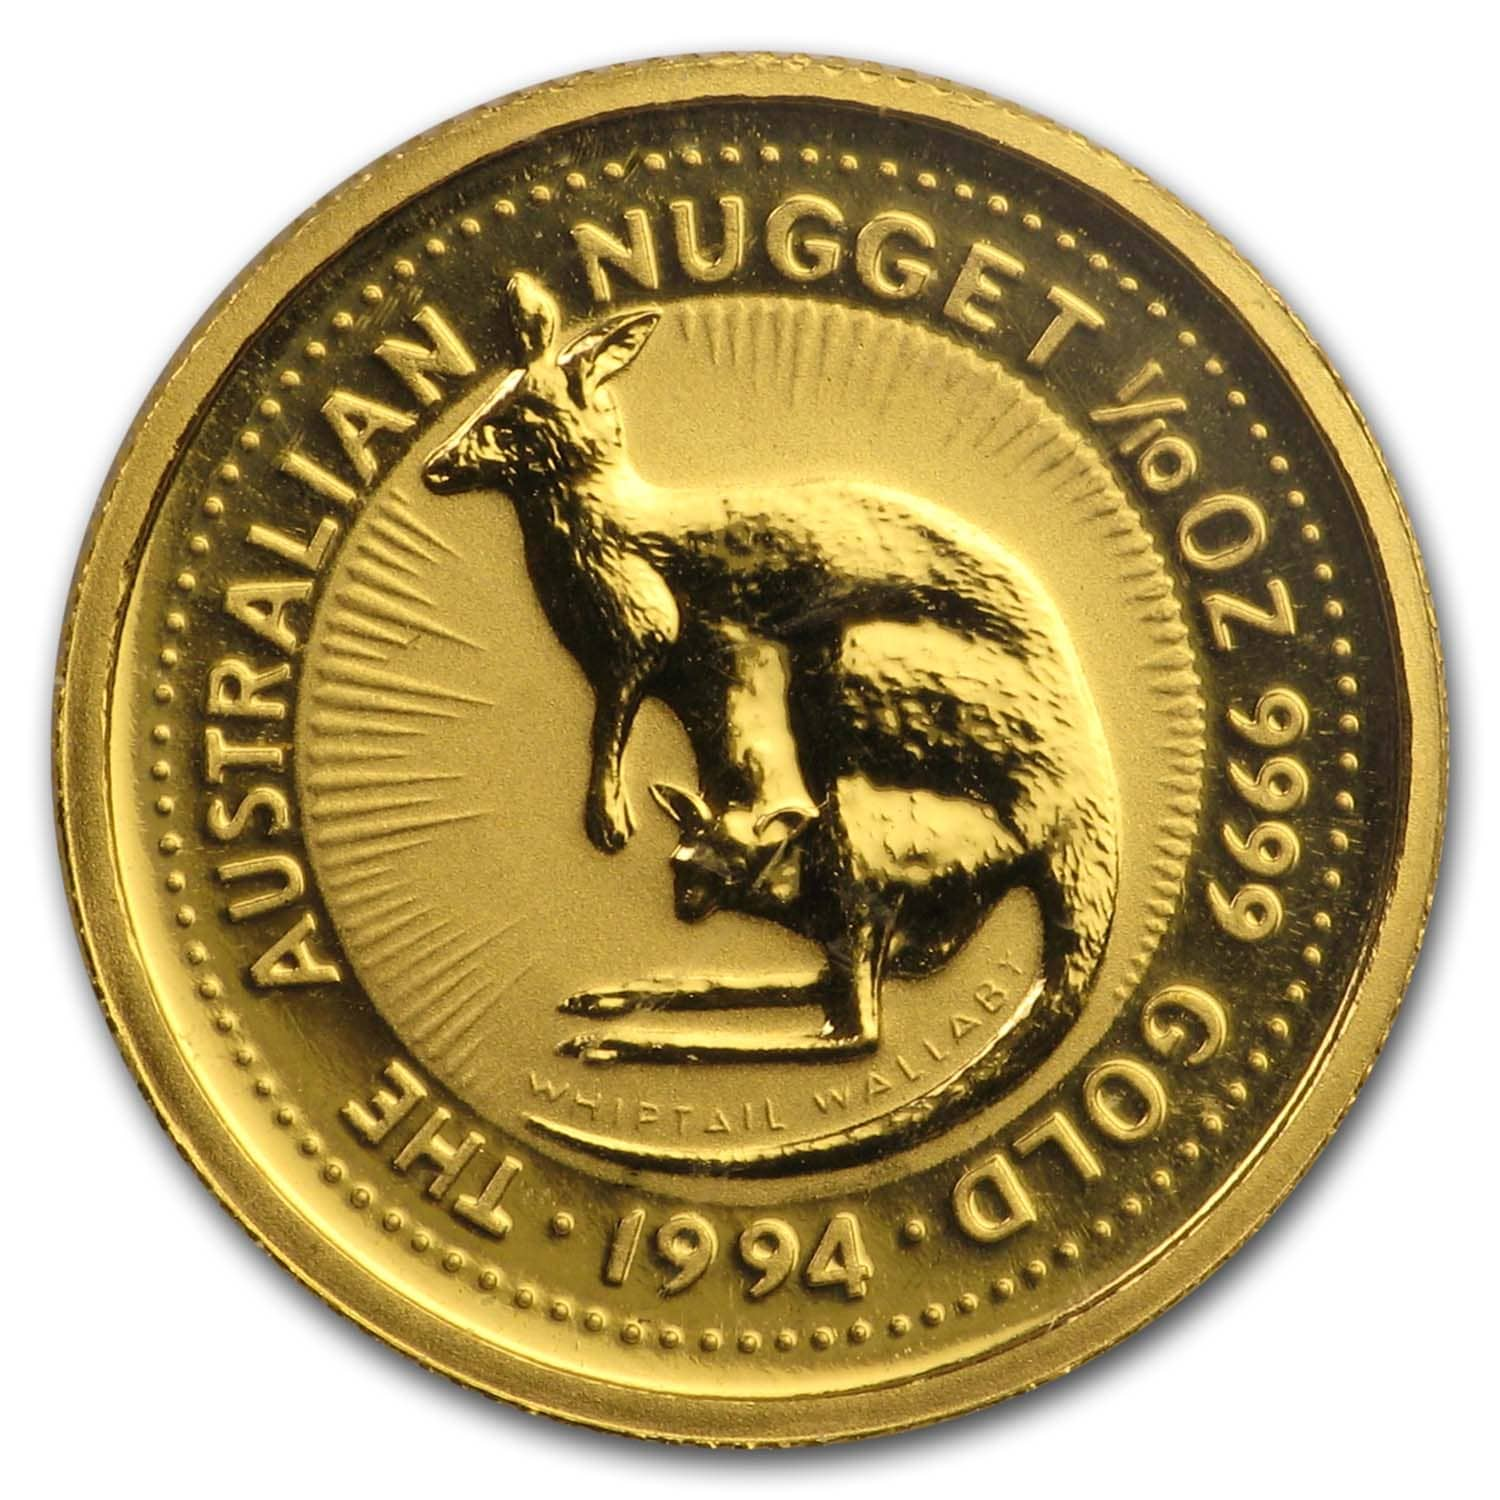 1994 1/10 oz Australian Gold Nugget